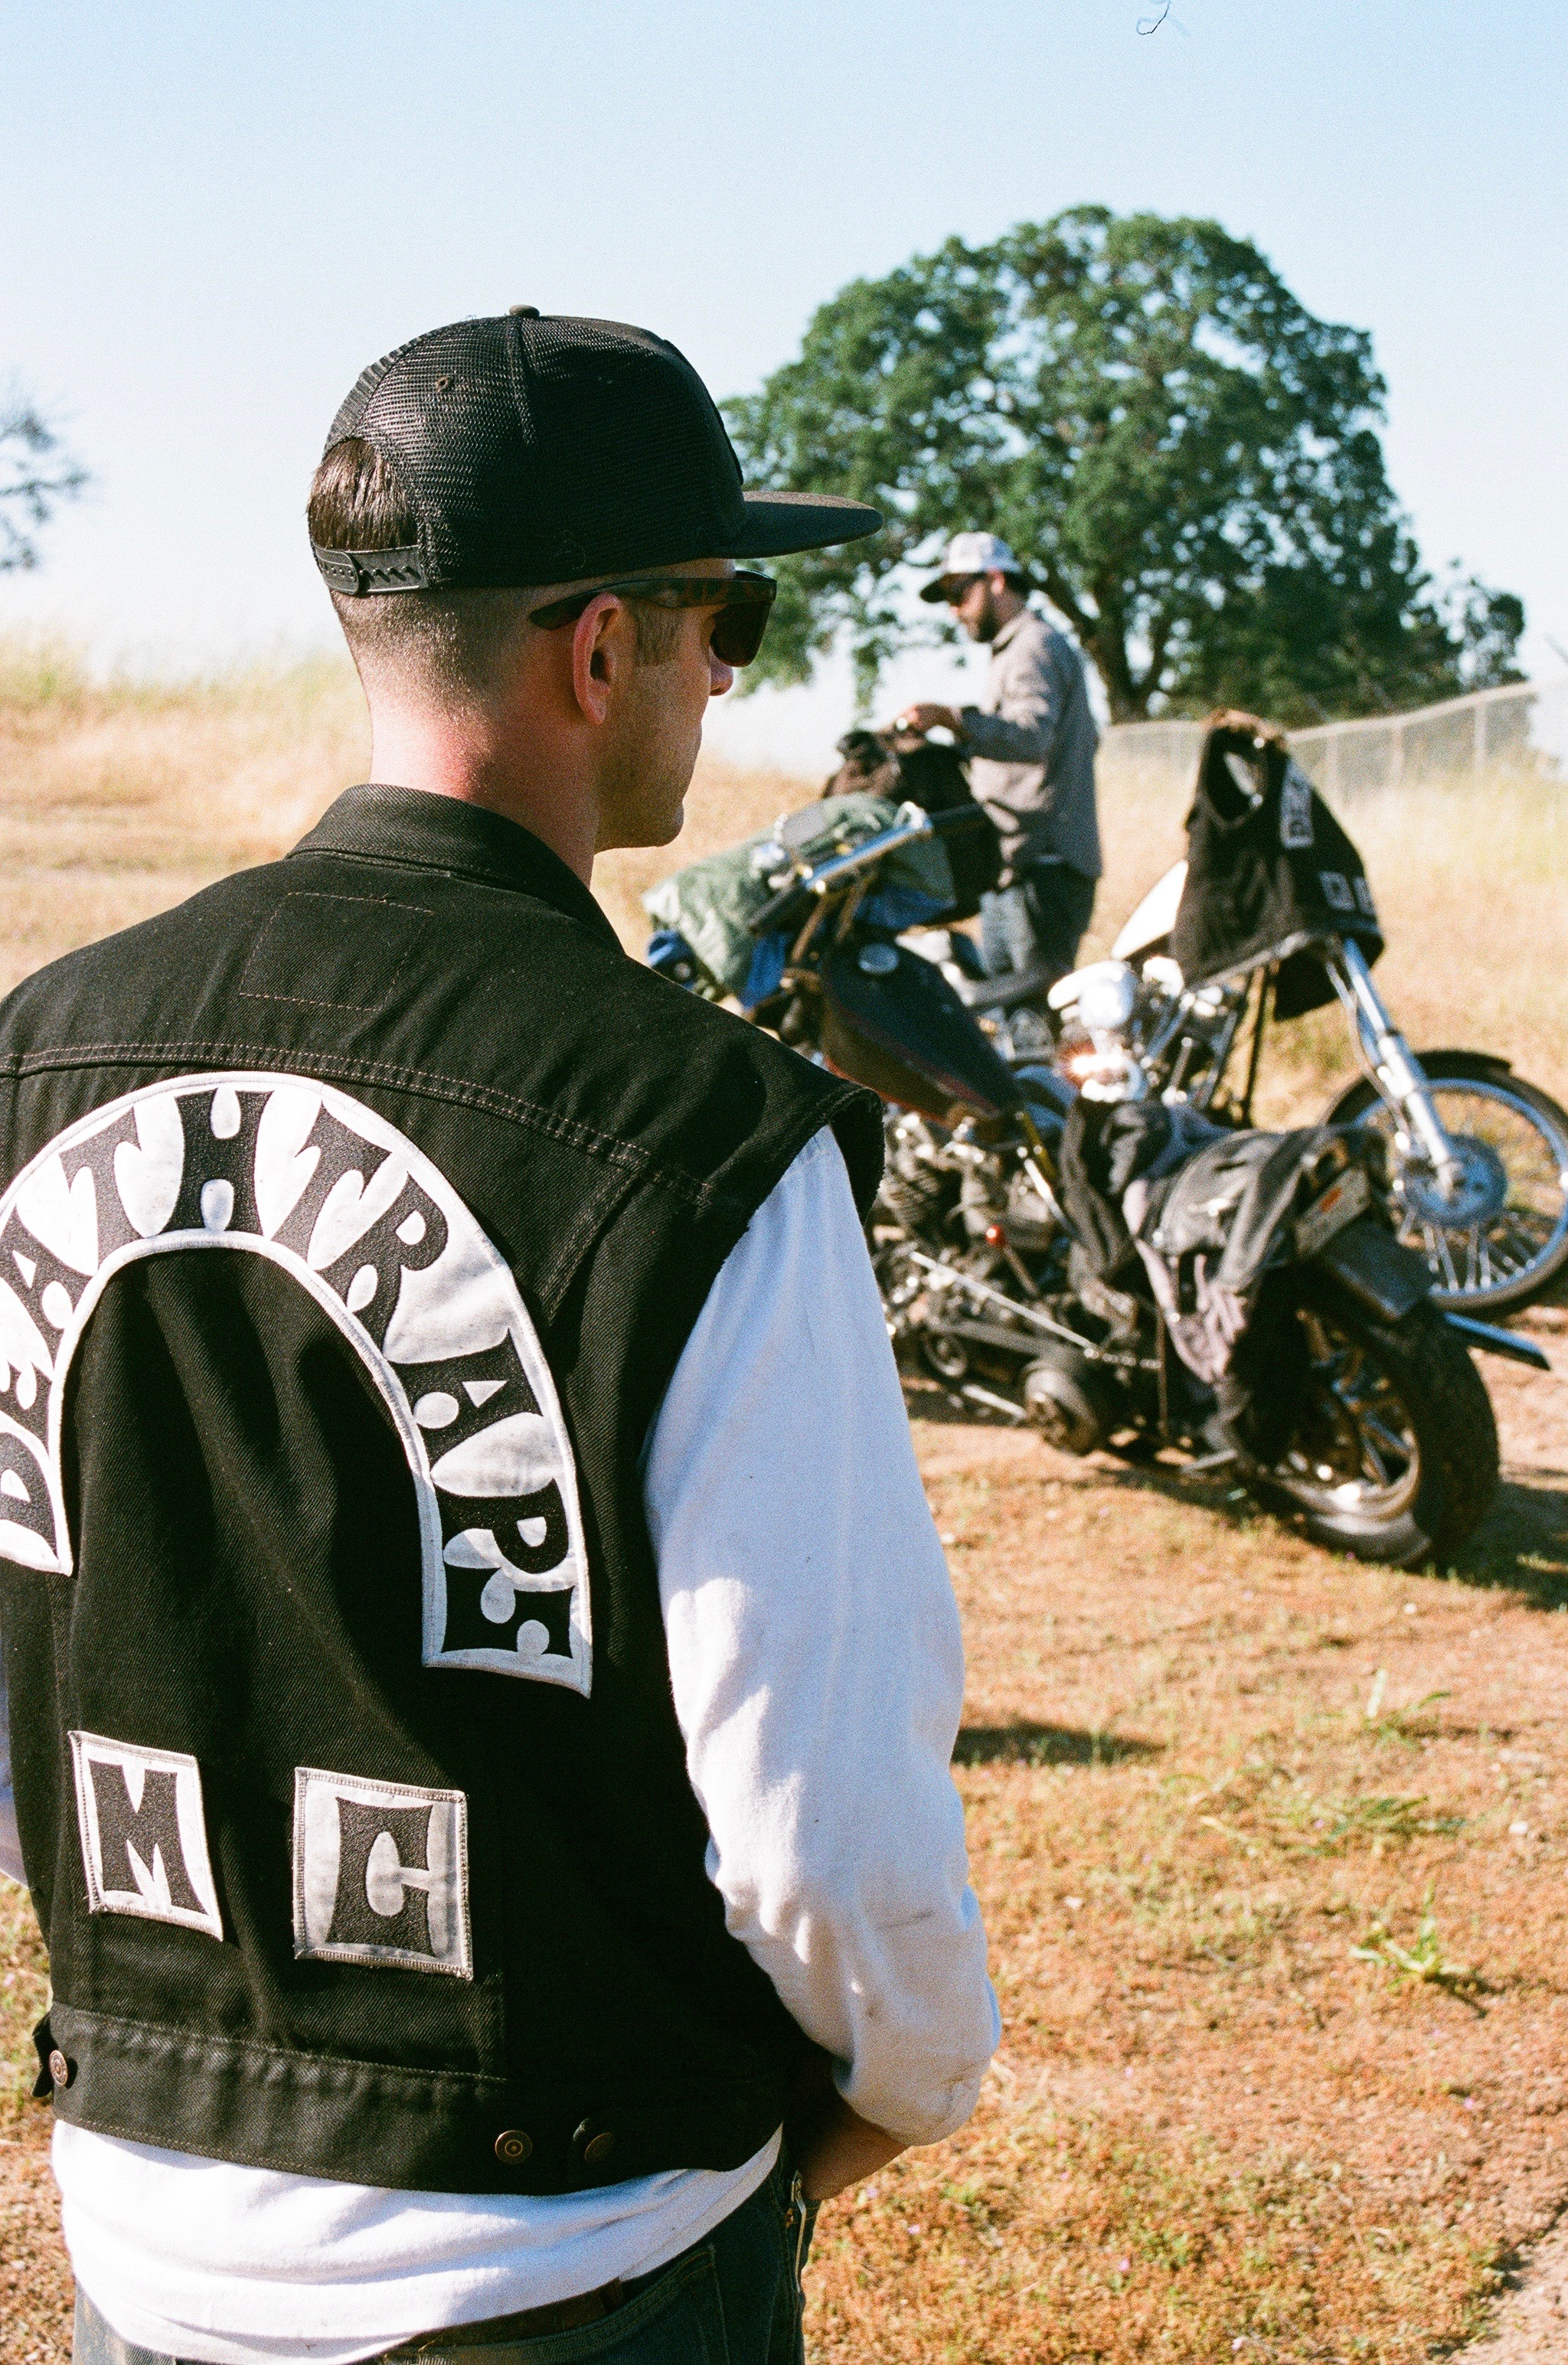 MINDSET: - Deathtraps MC is built on the belief that choppers are meant to be ridden and ridden hard. Garage polished princesses, hidden away from the sunlight in trailers and showrooms, only tortures the soul of the bike. Tight corners, steep mountain passes, desert straightaways, and makeshift parking lots in fields next to campfires is what this club and these bikes represent. See you on the road!